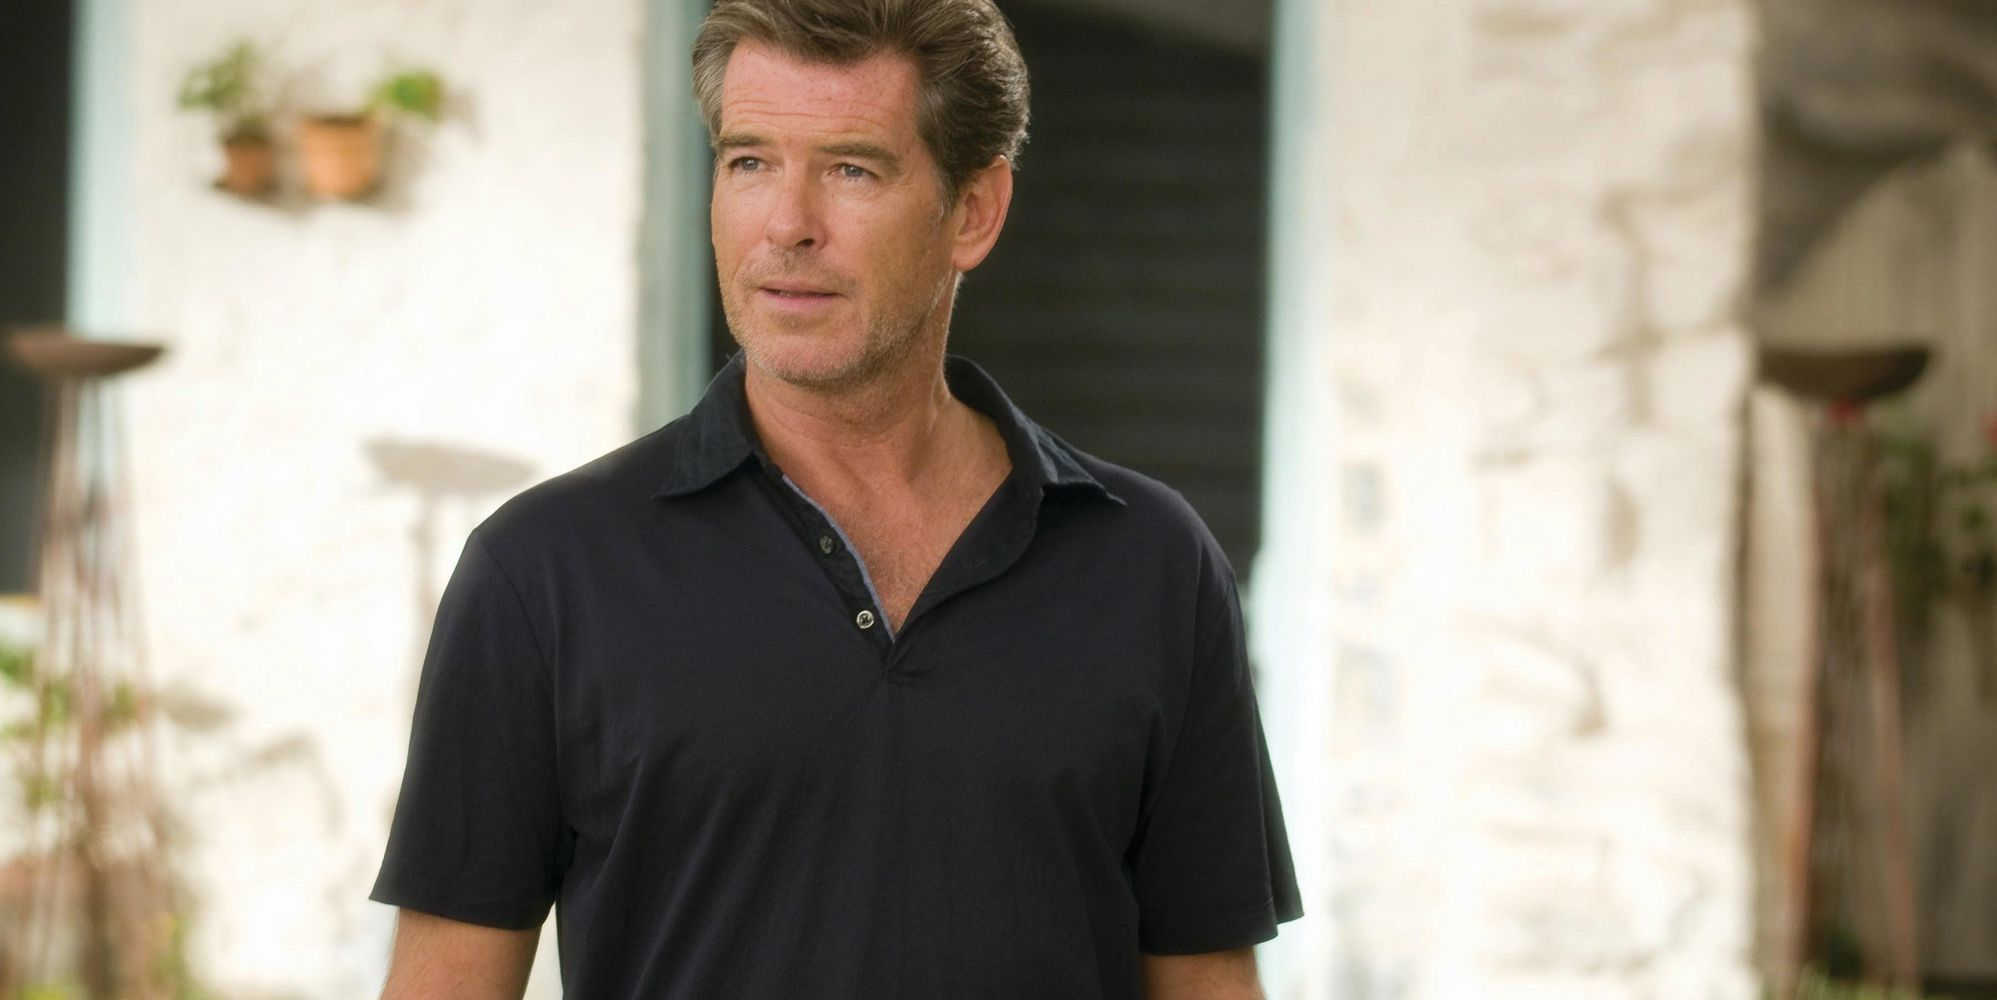 Pierce Brosnan Confirms He - And His Singing Voice - Will Be Back In 'Mamma Mia!' Sequel